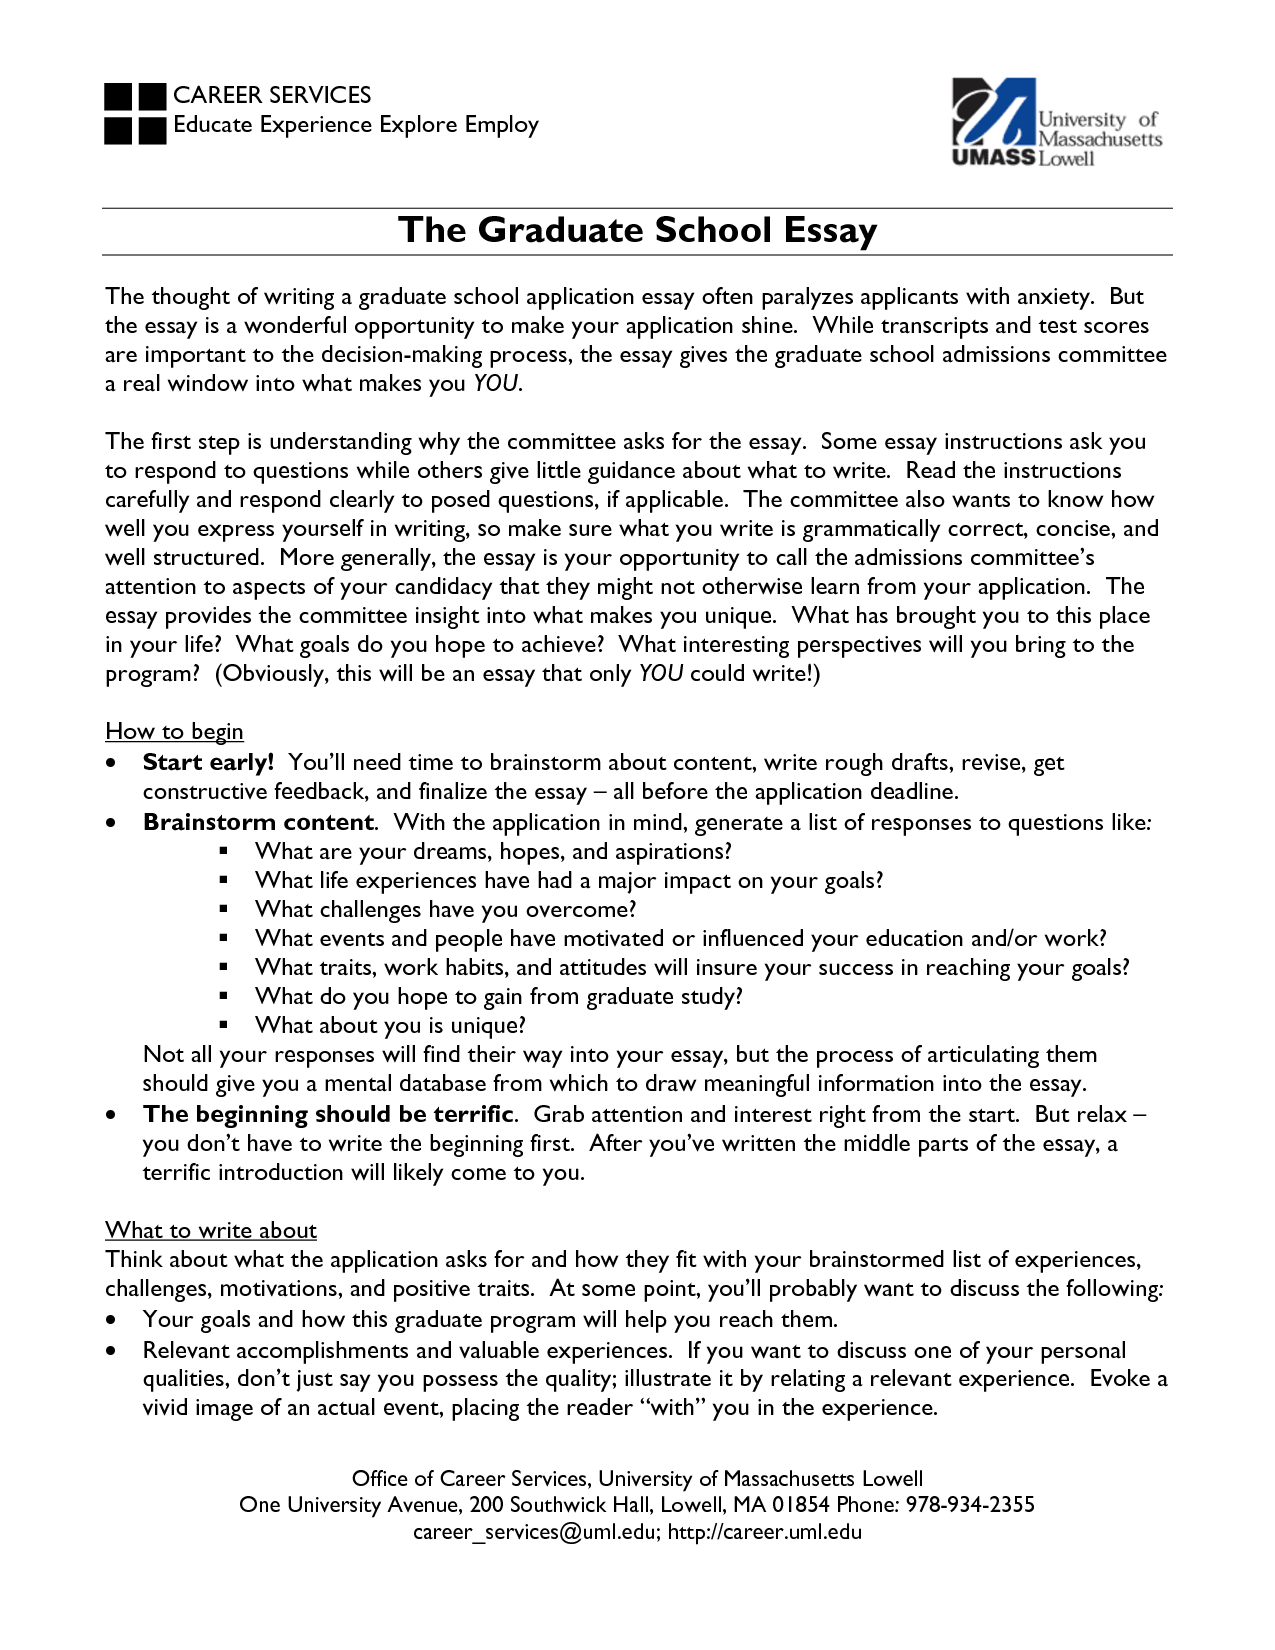 essays samples for college admission 1 19 common mistakes in college application essays many students trip over common obstacles in their college application essays for example, many students can't see beyond the superficial prompt to construct an essay that positively.